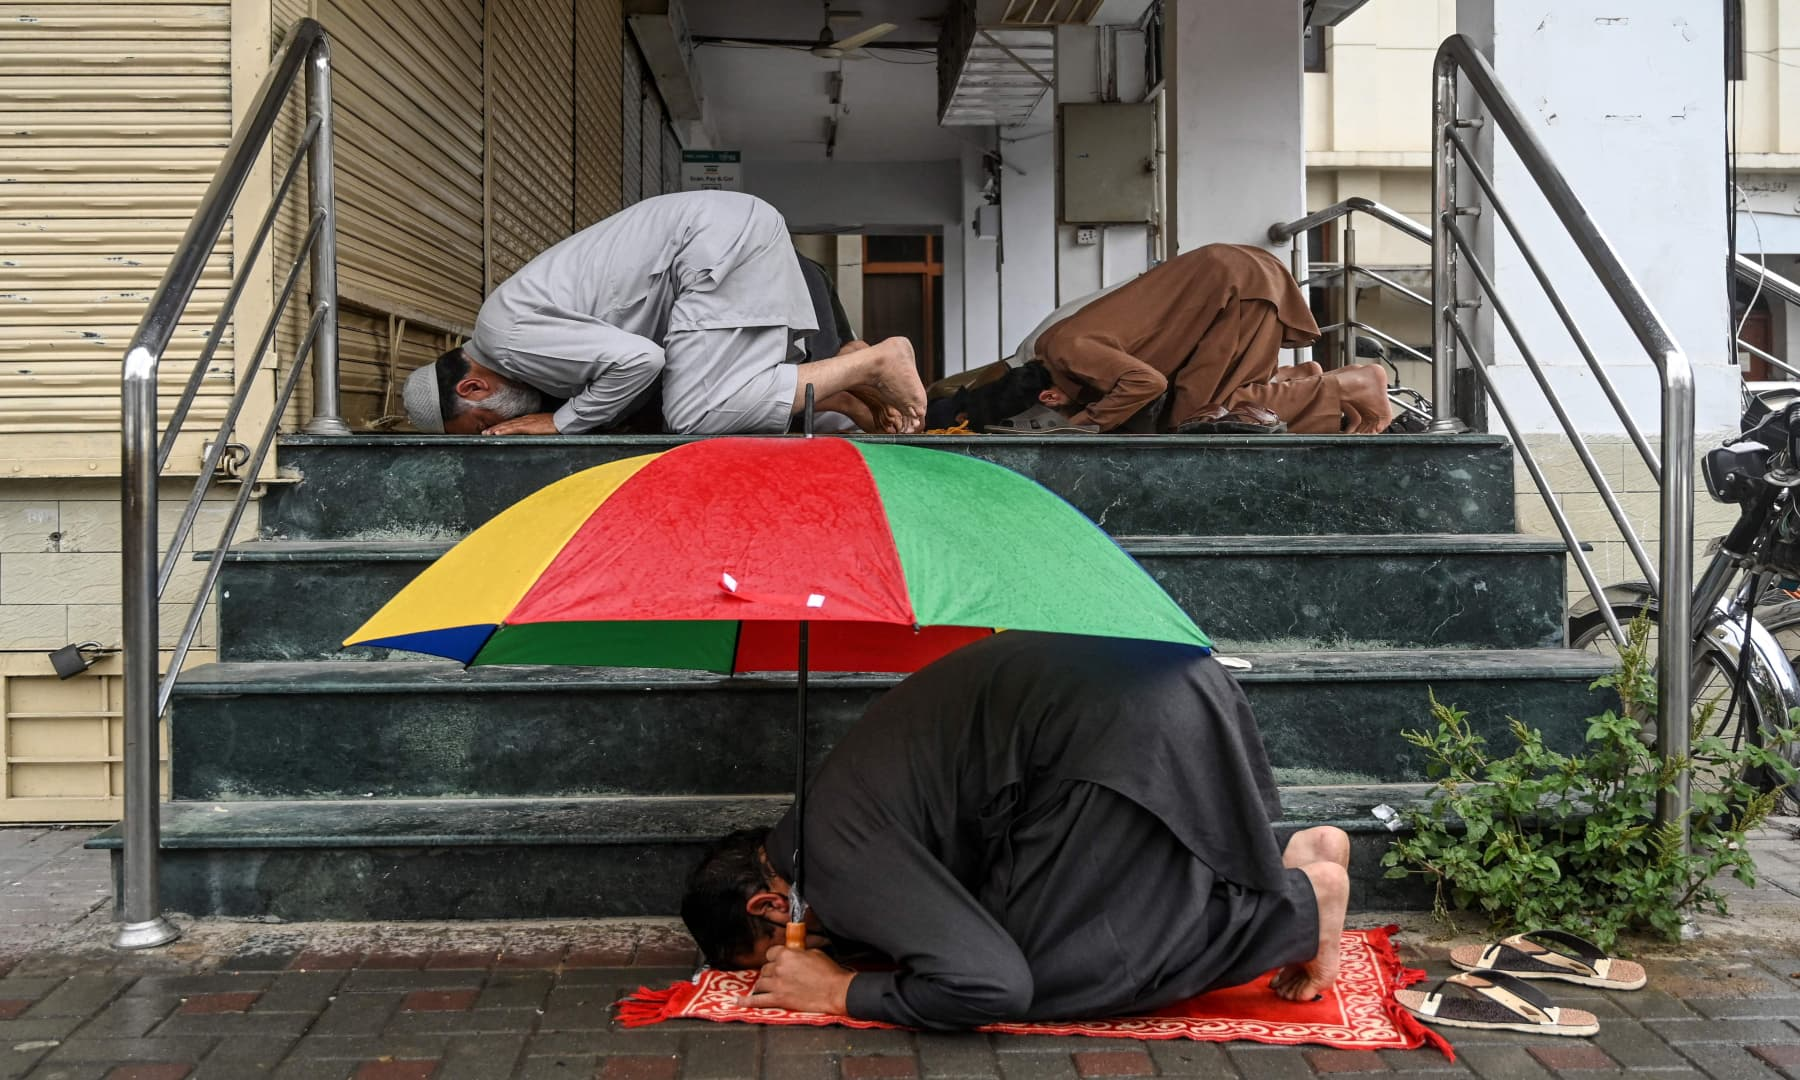 A worshipper holds an umbrella as he offers Friday prayers along with others outside a mosque in Islamabad. — AFP